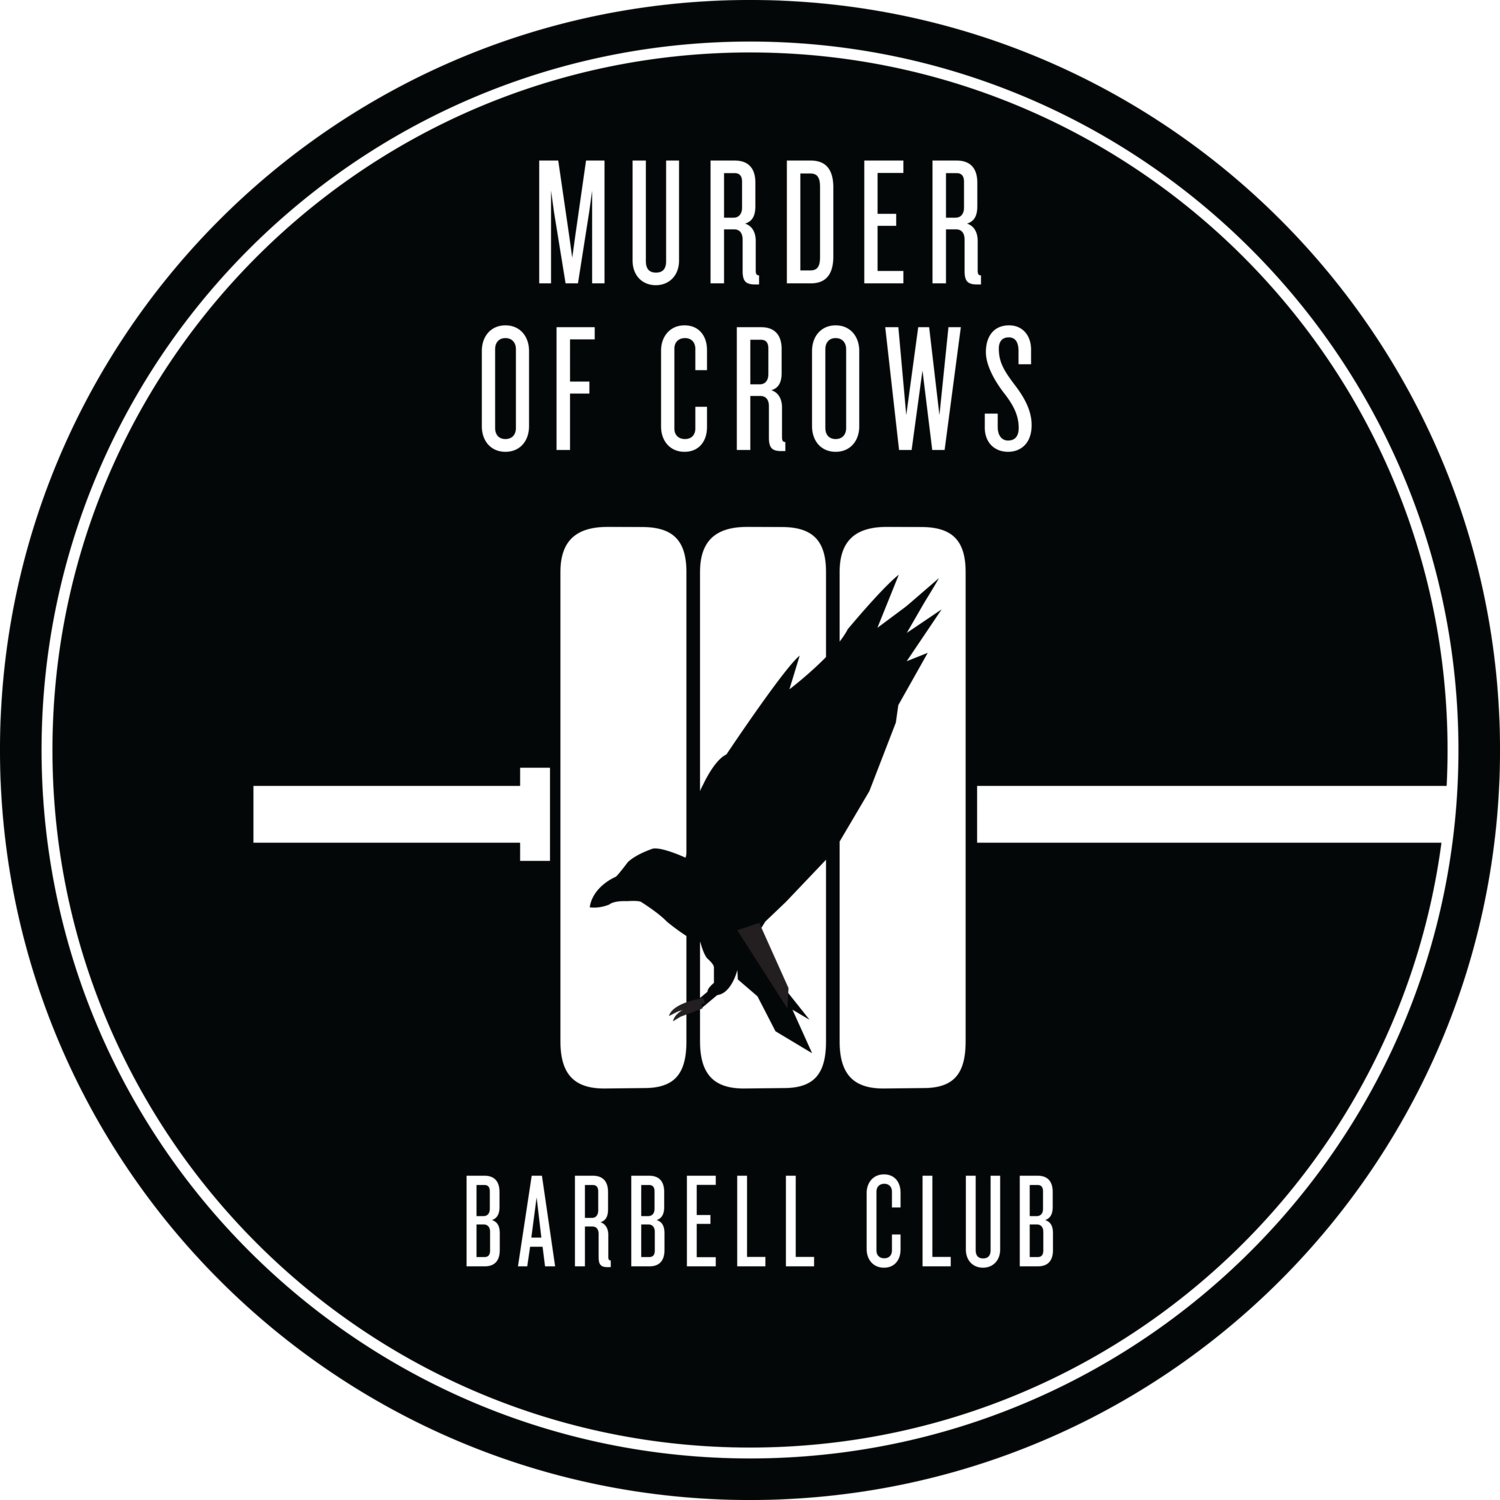 Murder of Crows Barbell